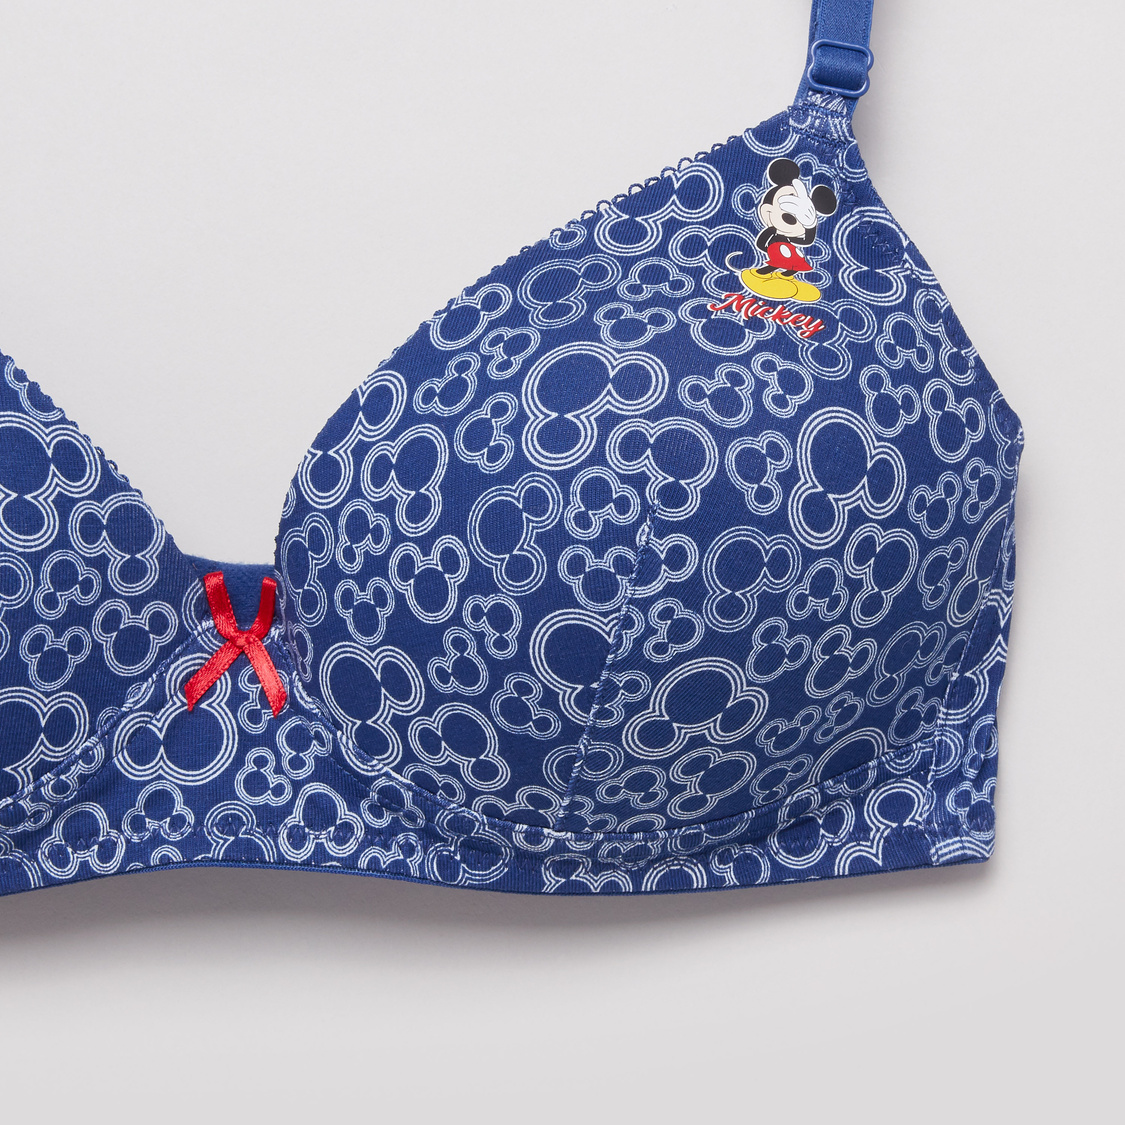 Printed T-shirt Bra with Hook and Eye Closure